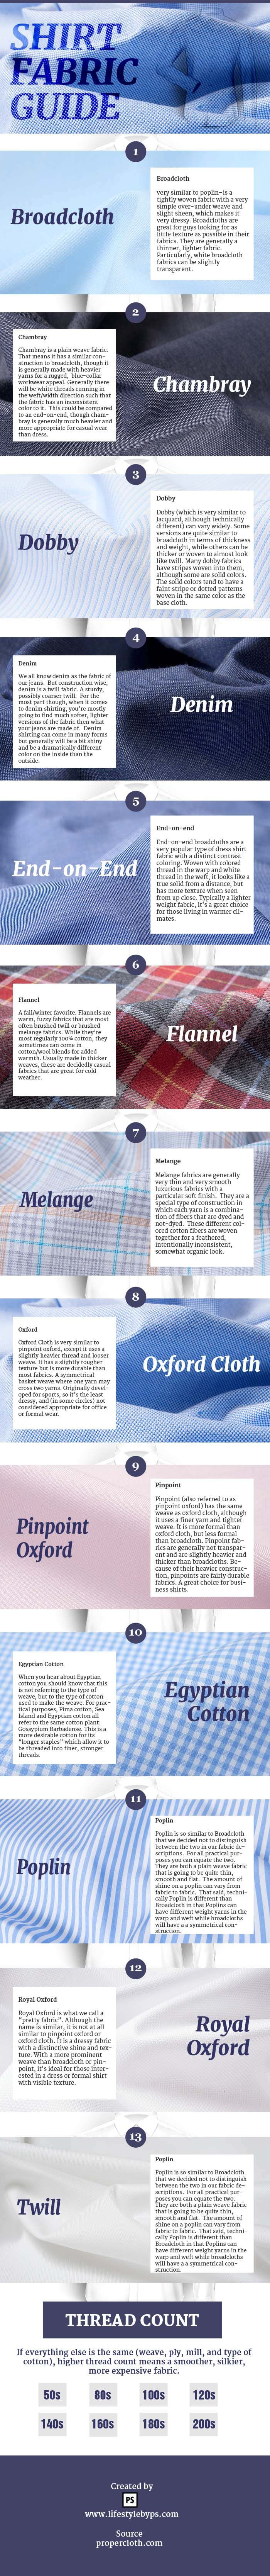 shirt fabrics, infographic of different fabrics used for shirts